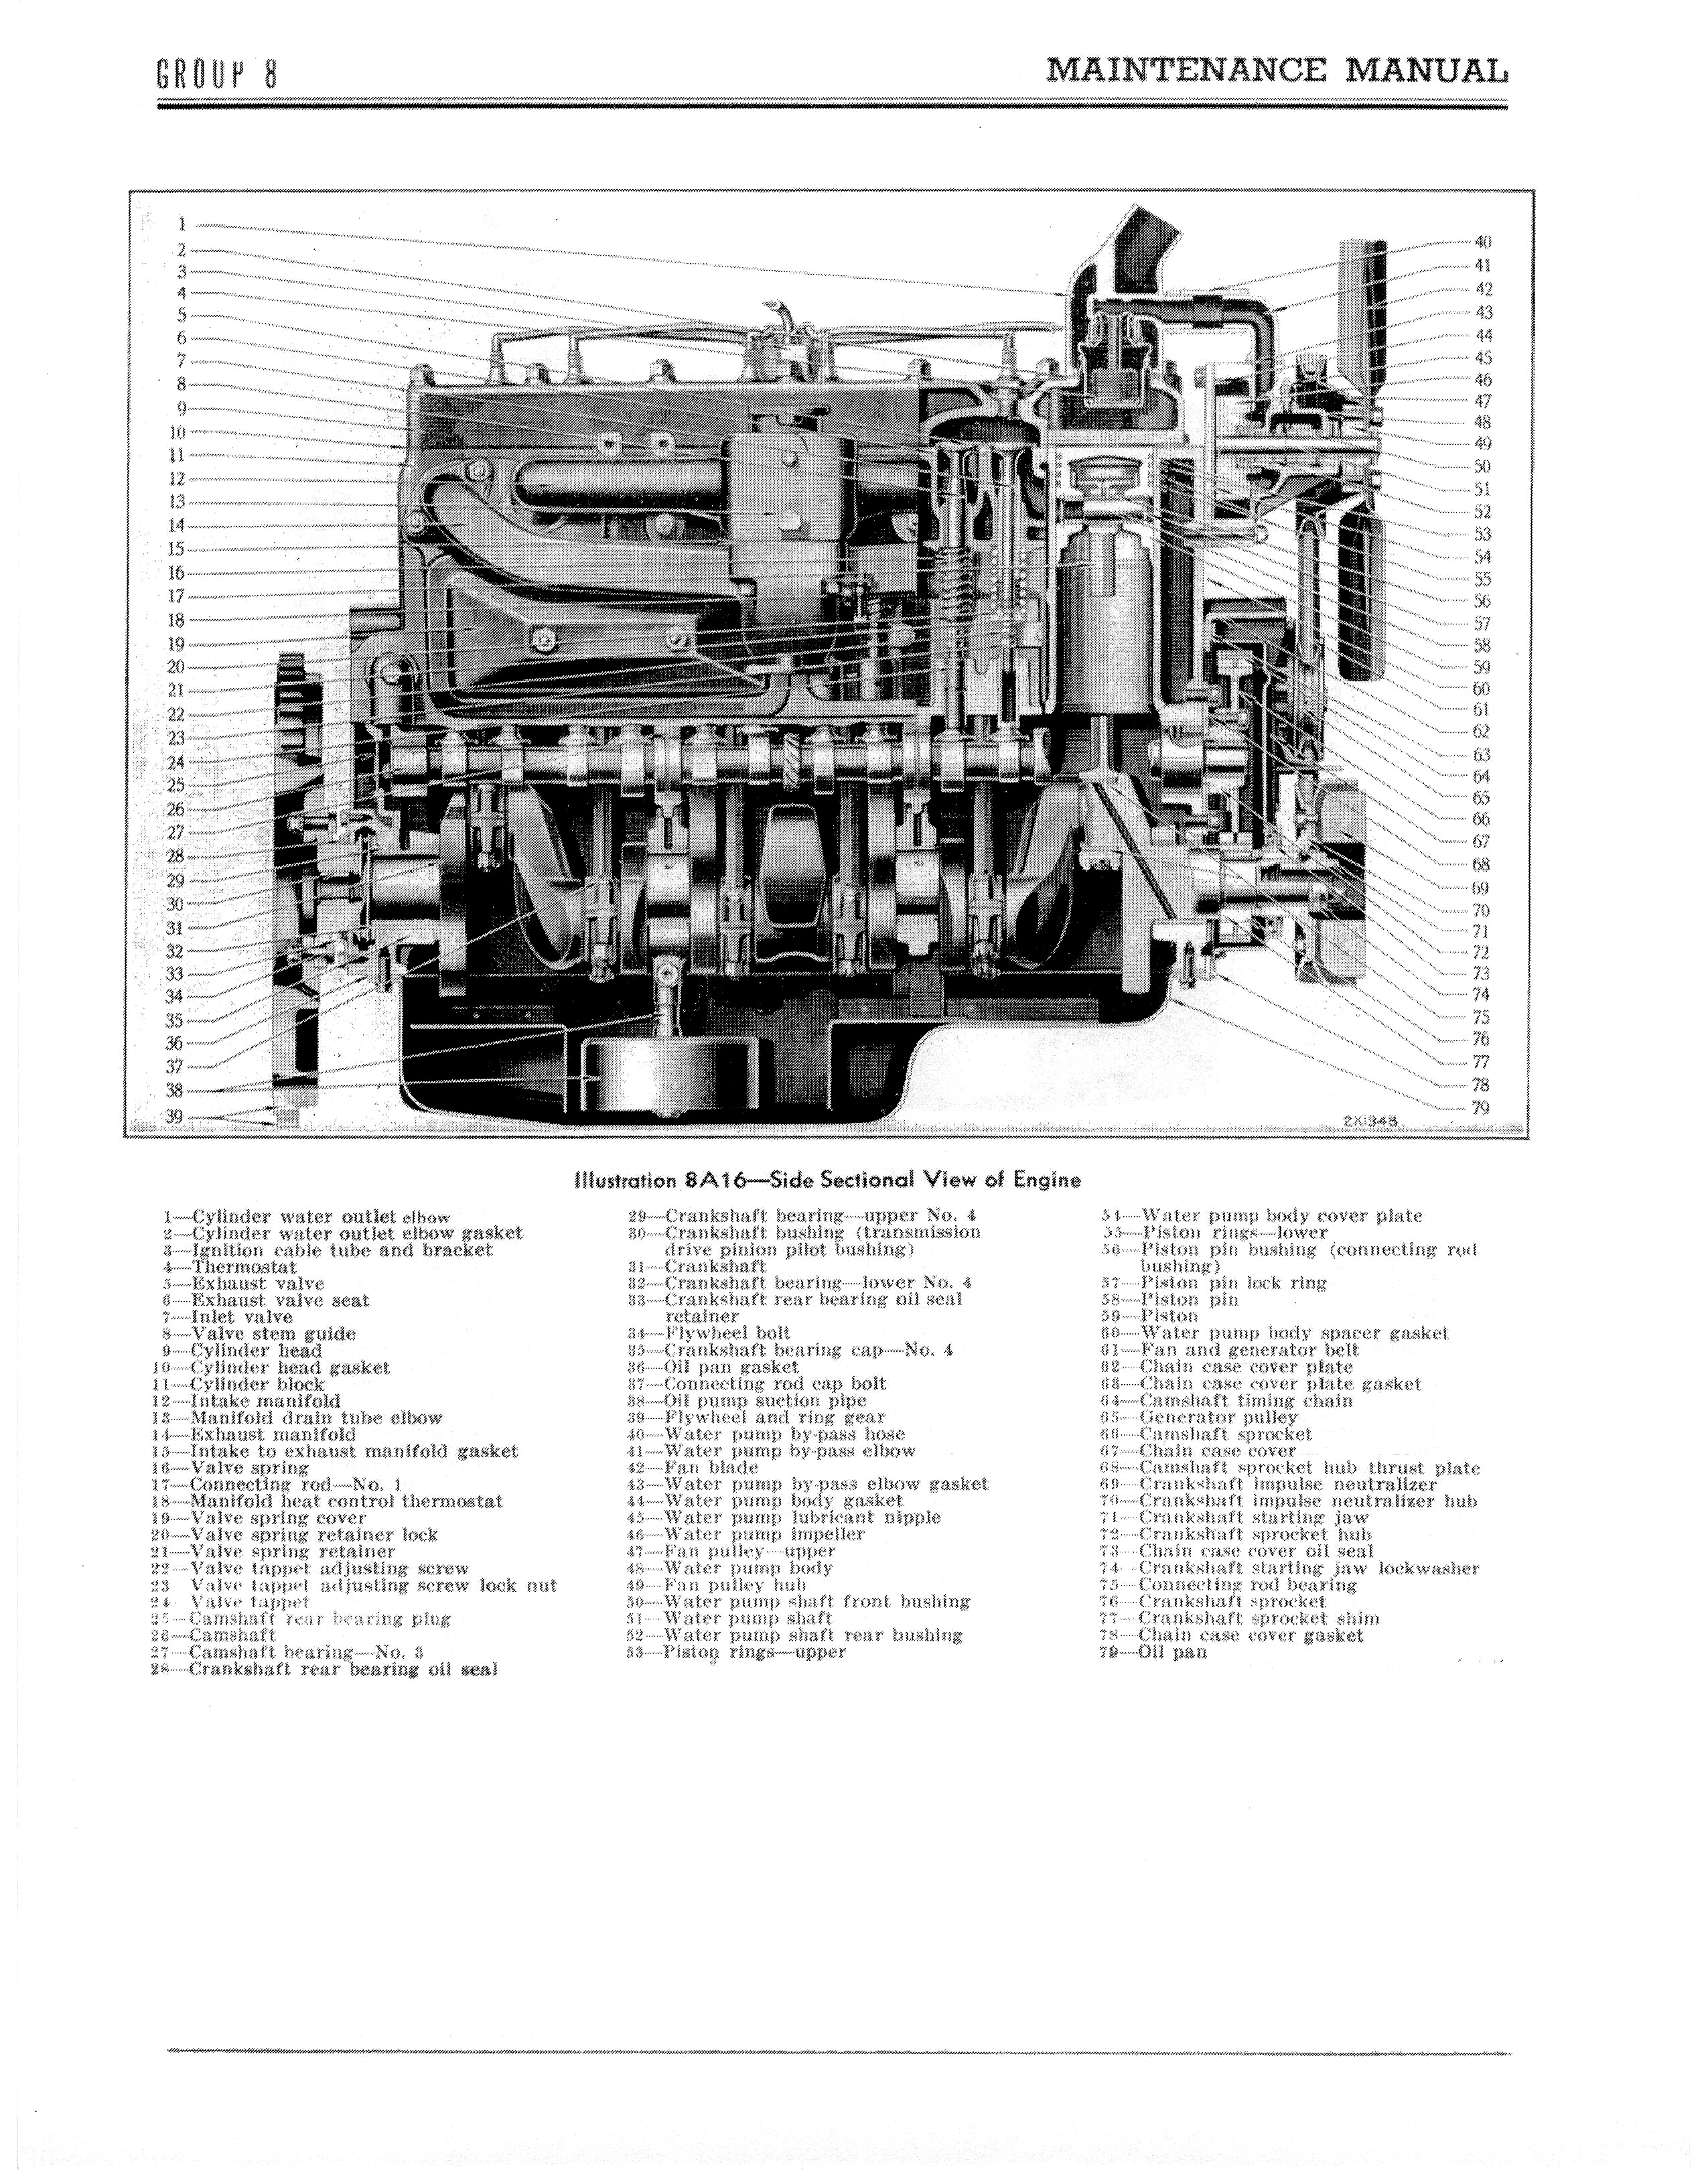 Chrysler Imperial Service Manual